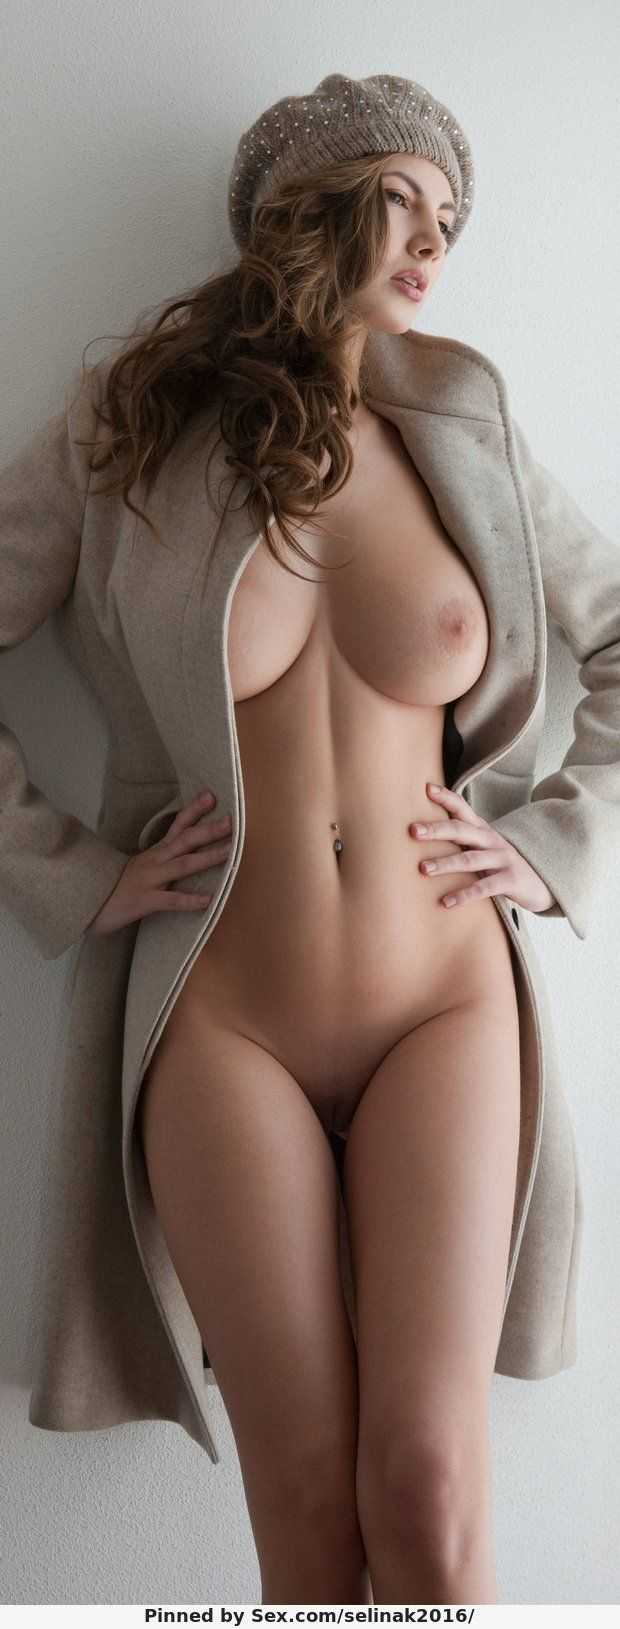 Gorgeous hottie nude #4